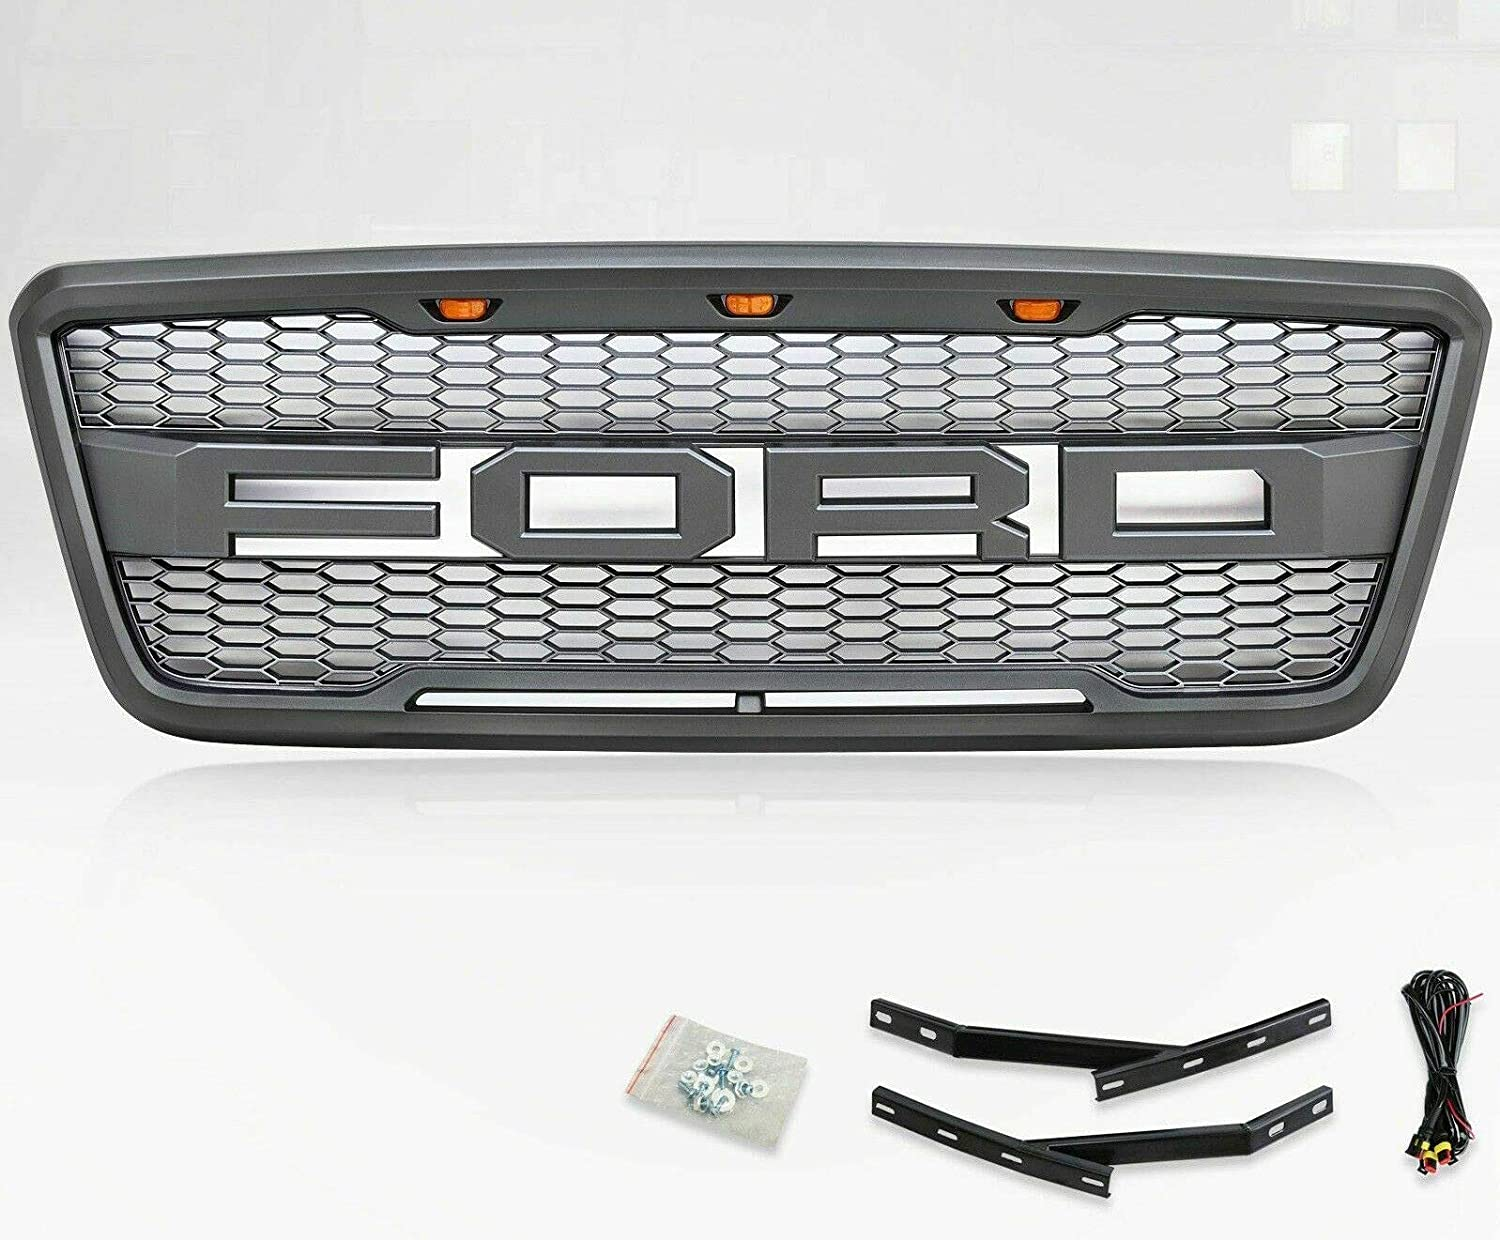 VZ4X4 Front Grill for Ford F150 2004 2005 2006 2007 2008 Raptor Style Grill Gray